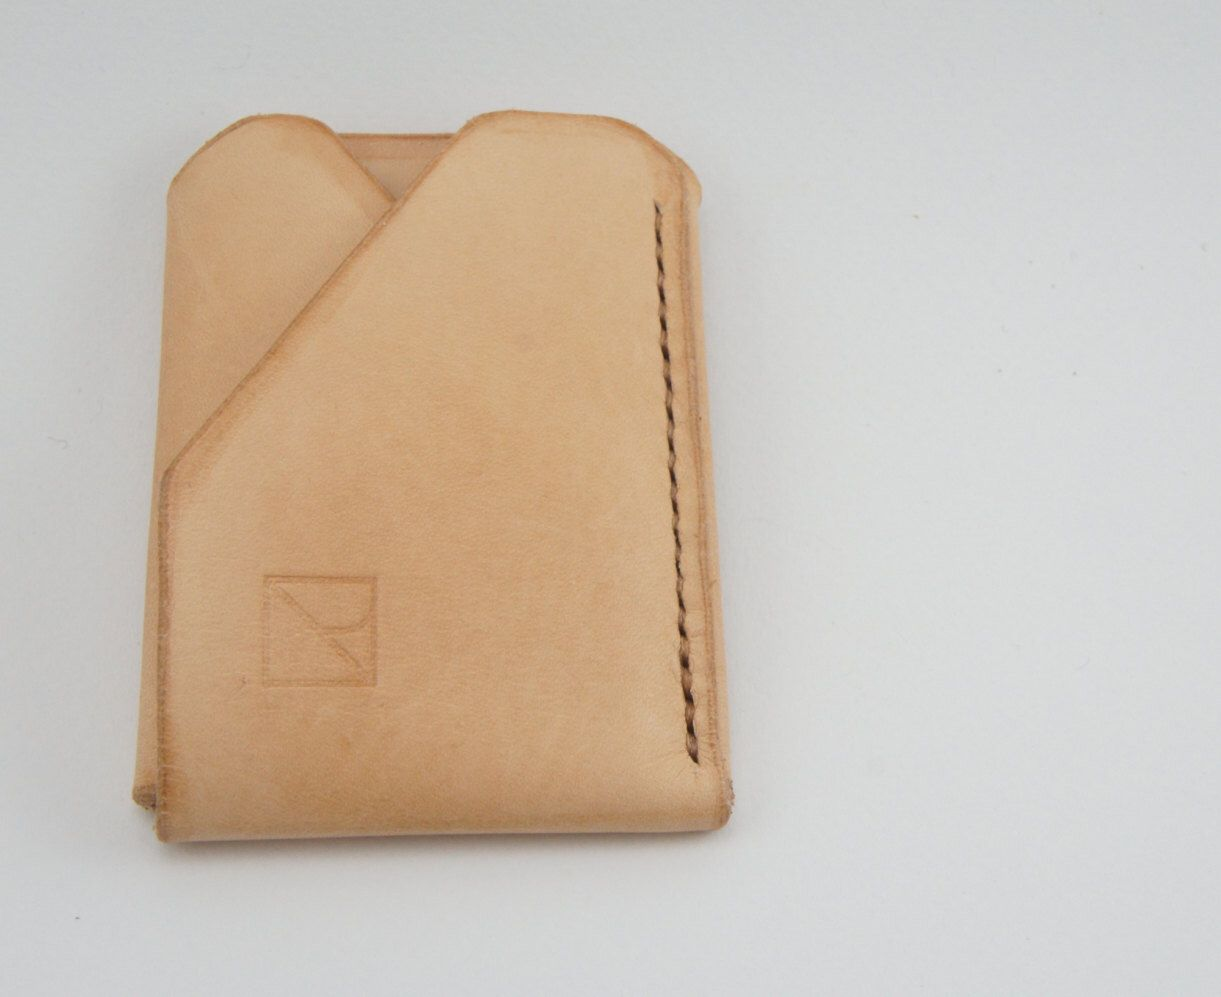 Handmade Minimal Leather Card Wallet by RalenHandmade on Etsy https://www.etsy.com/sg-en/listing/260694918/handmade-minimal-leather-card-wallet